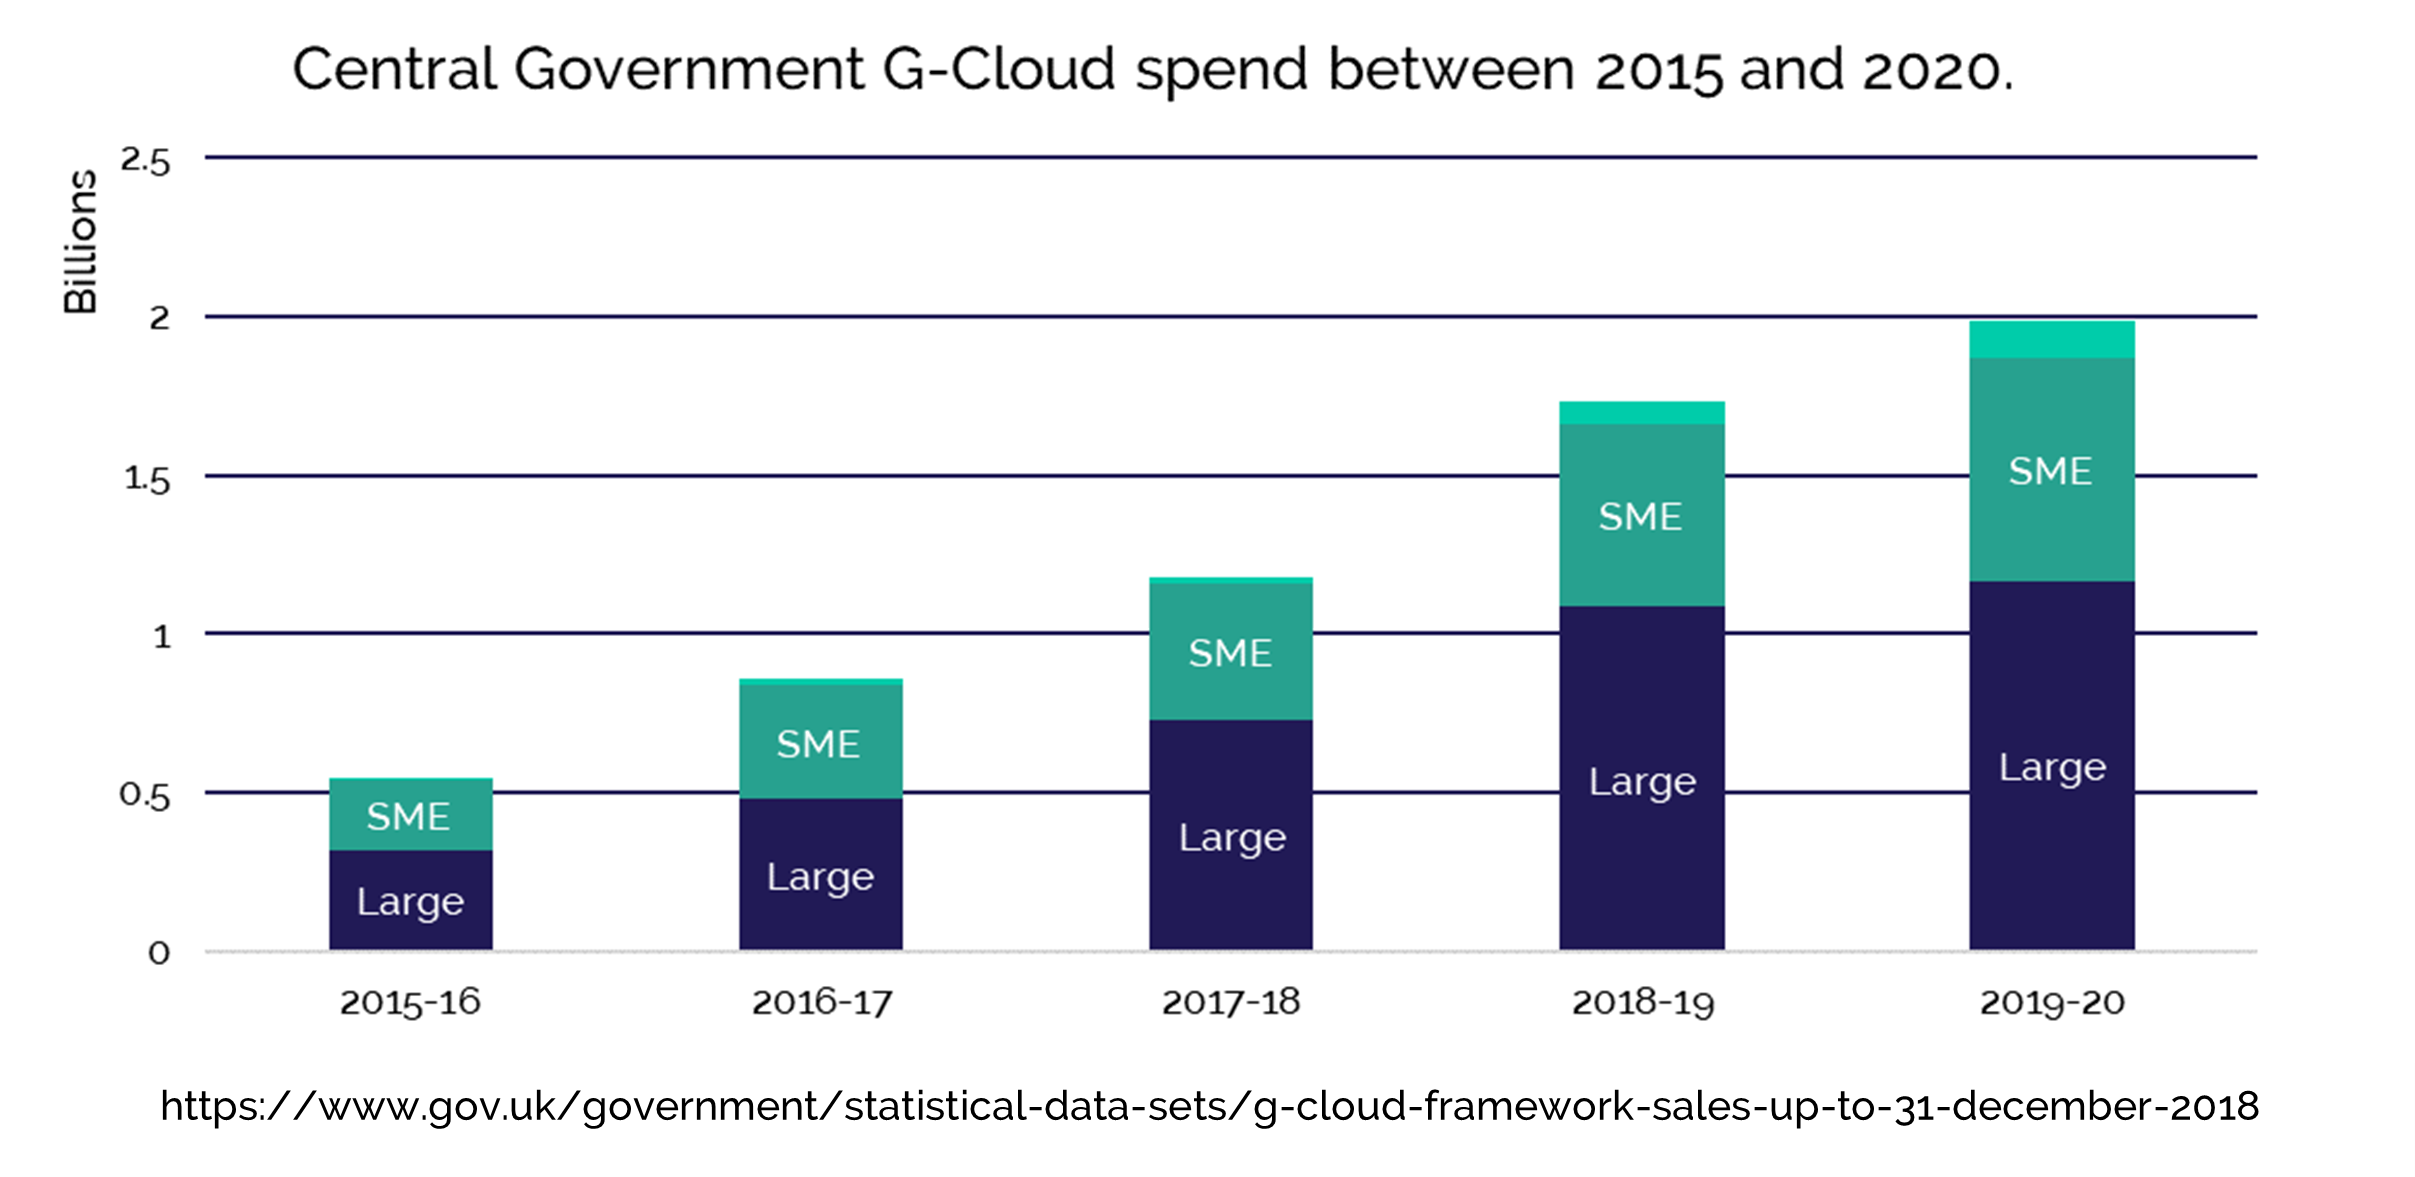 Central Government G-Cloud spend between 2015 and 2020.